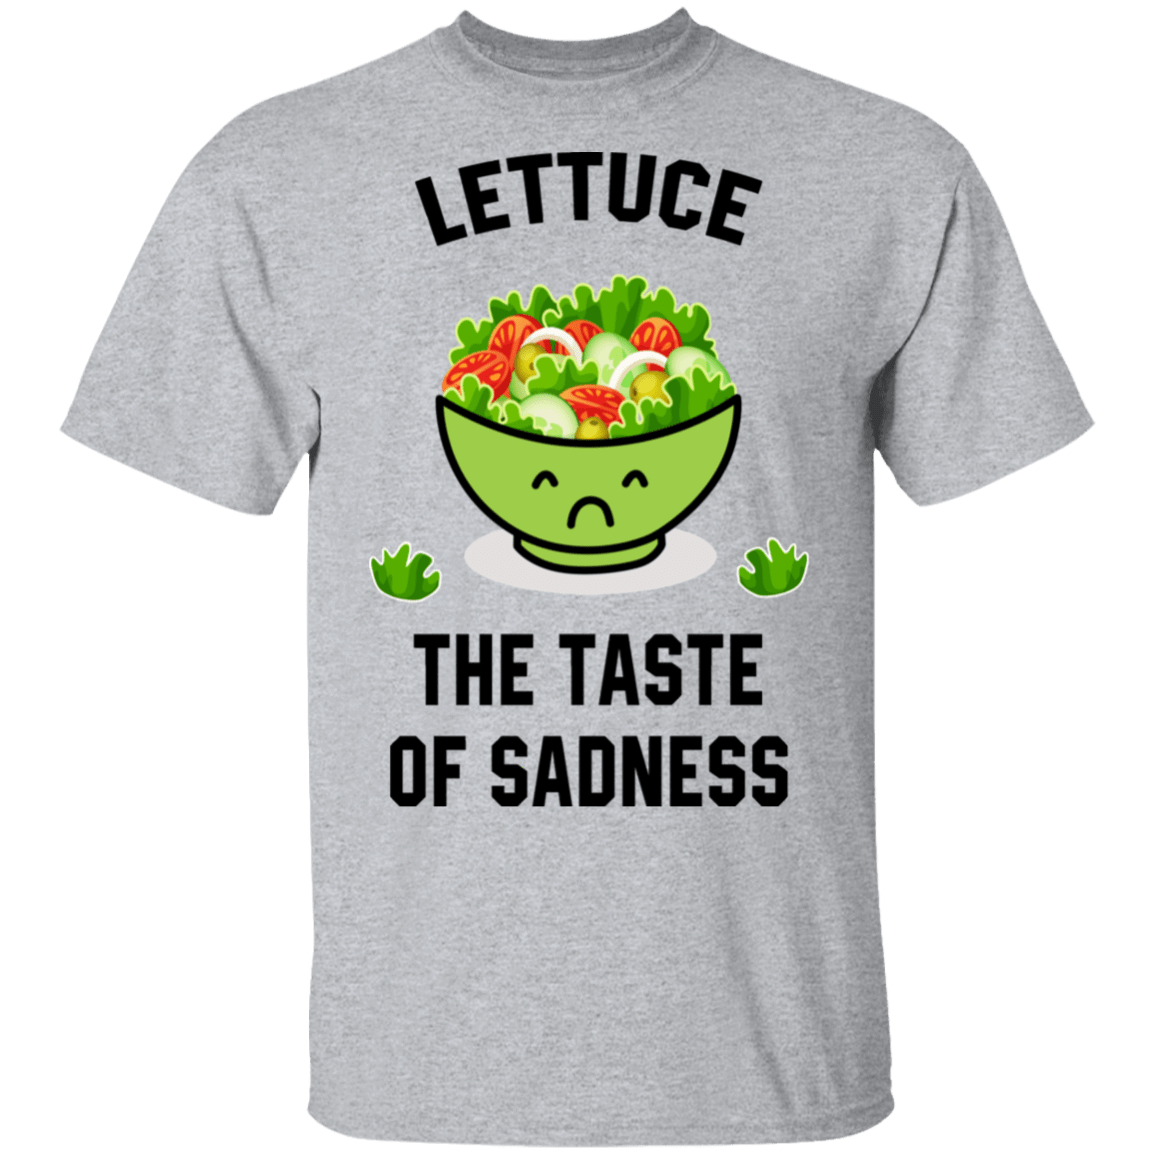 Lettuce The Taste Of Sadness T-Shirts, Hoodies, Tank 22-115-79463235-254 - Tee Ript